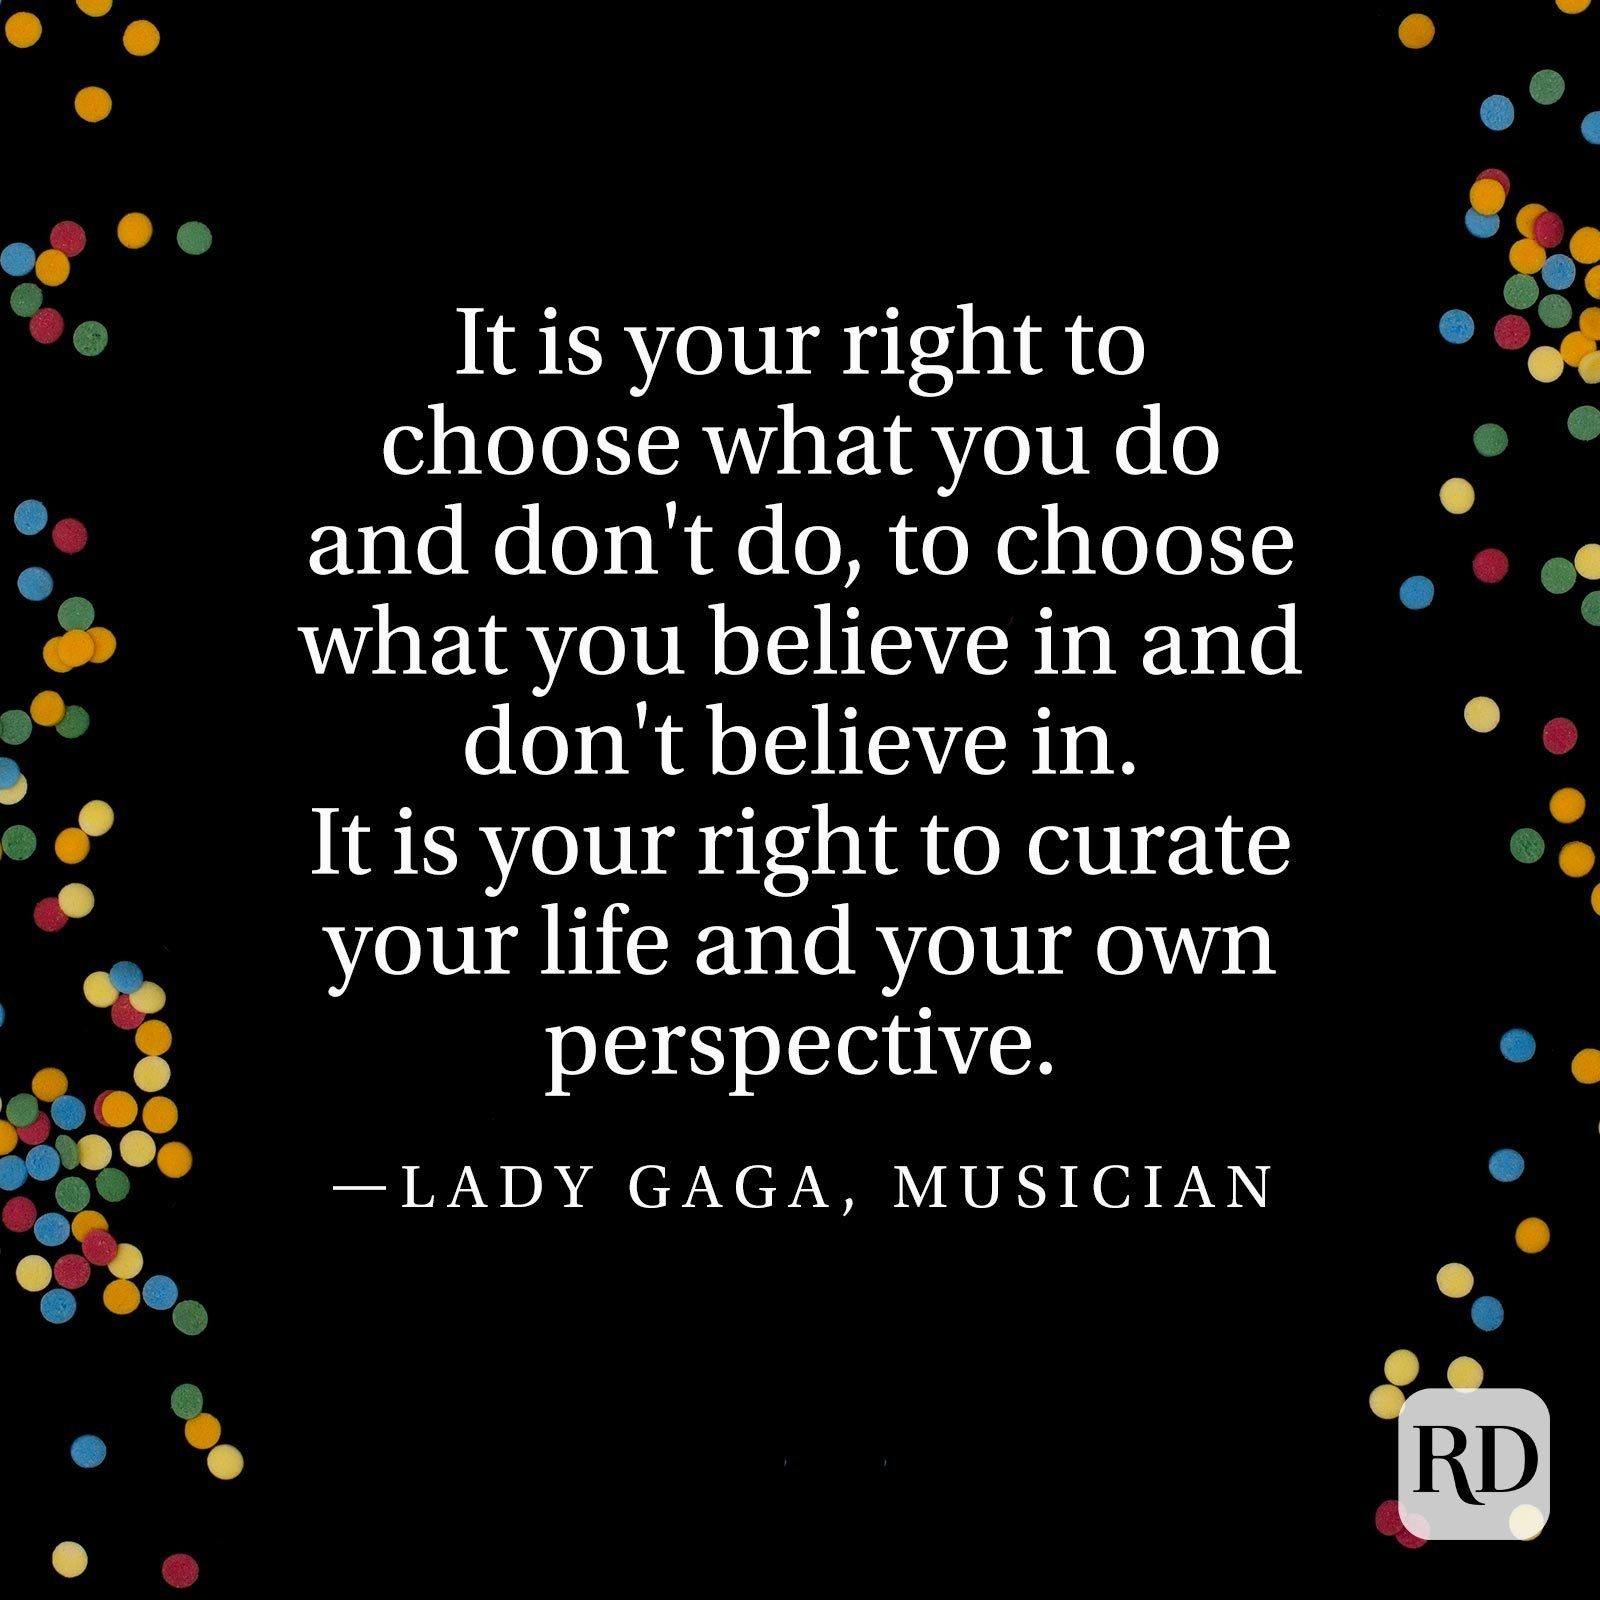 """It is your right to choose what you do and don't do, to choose what you believe in and don't believe in. It is your right to curate your life and your own perspective."" —Lady Gaga, musician"